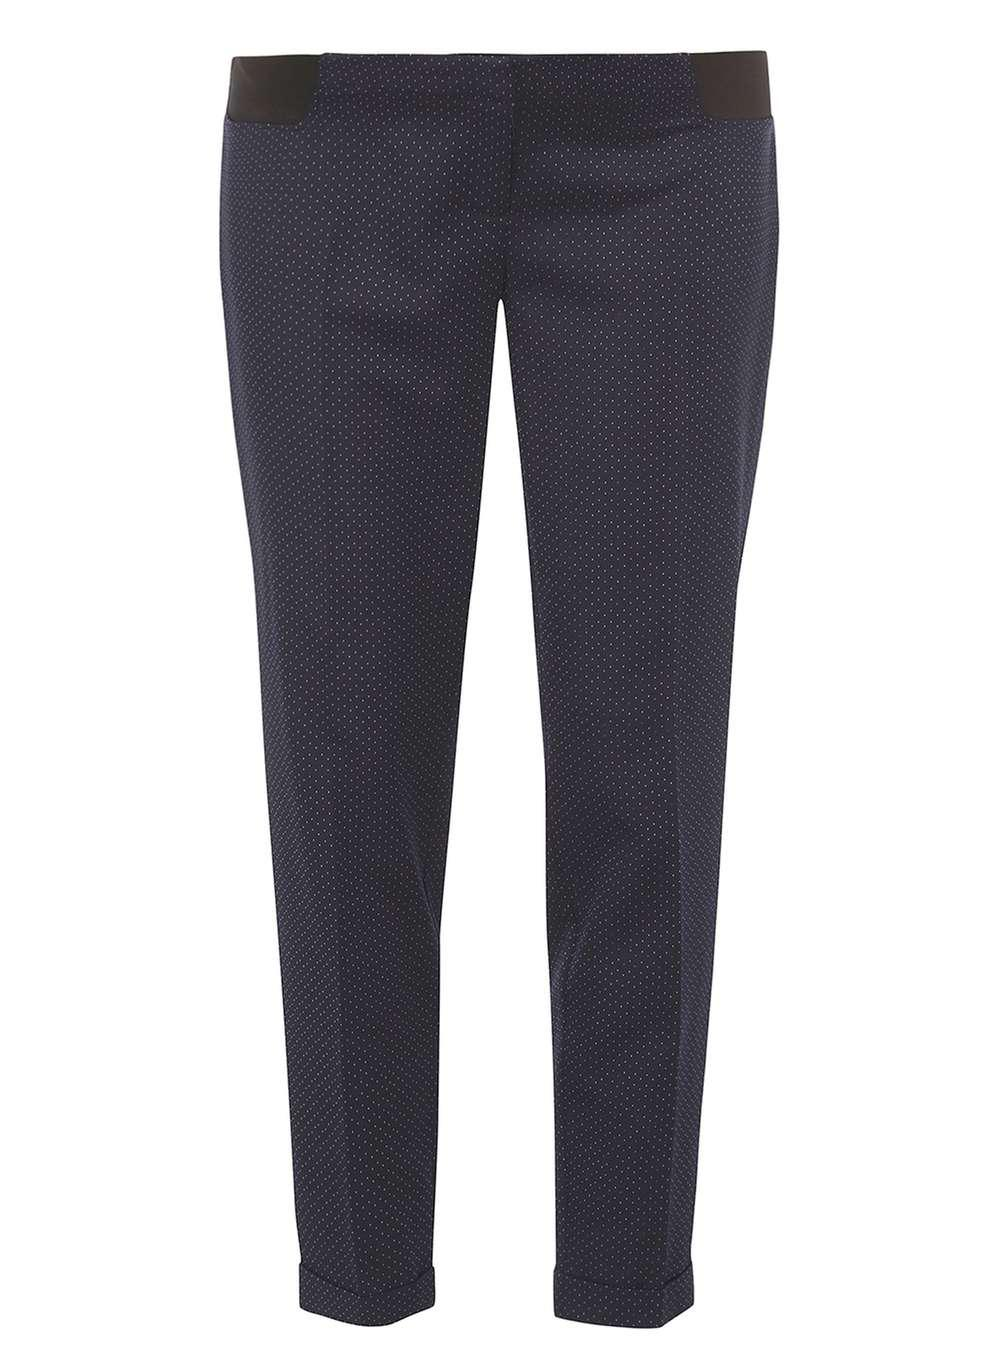 9749fed75f40d Lyst - Dorothy Perkins Maternity Navy Blue Spotted Straight Leg ...